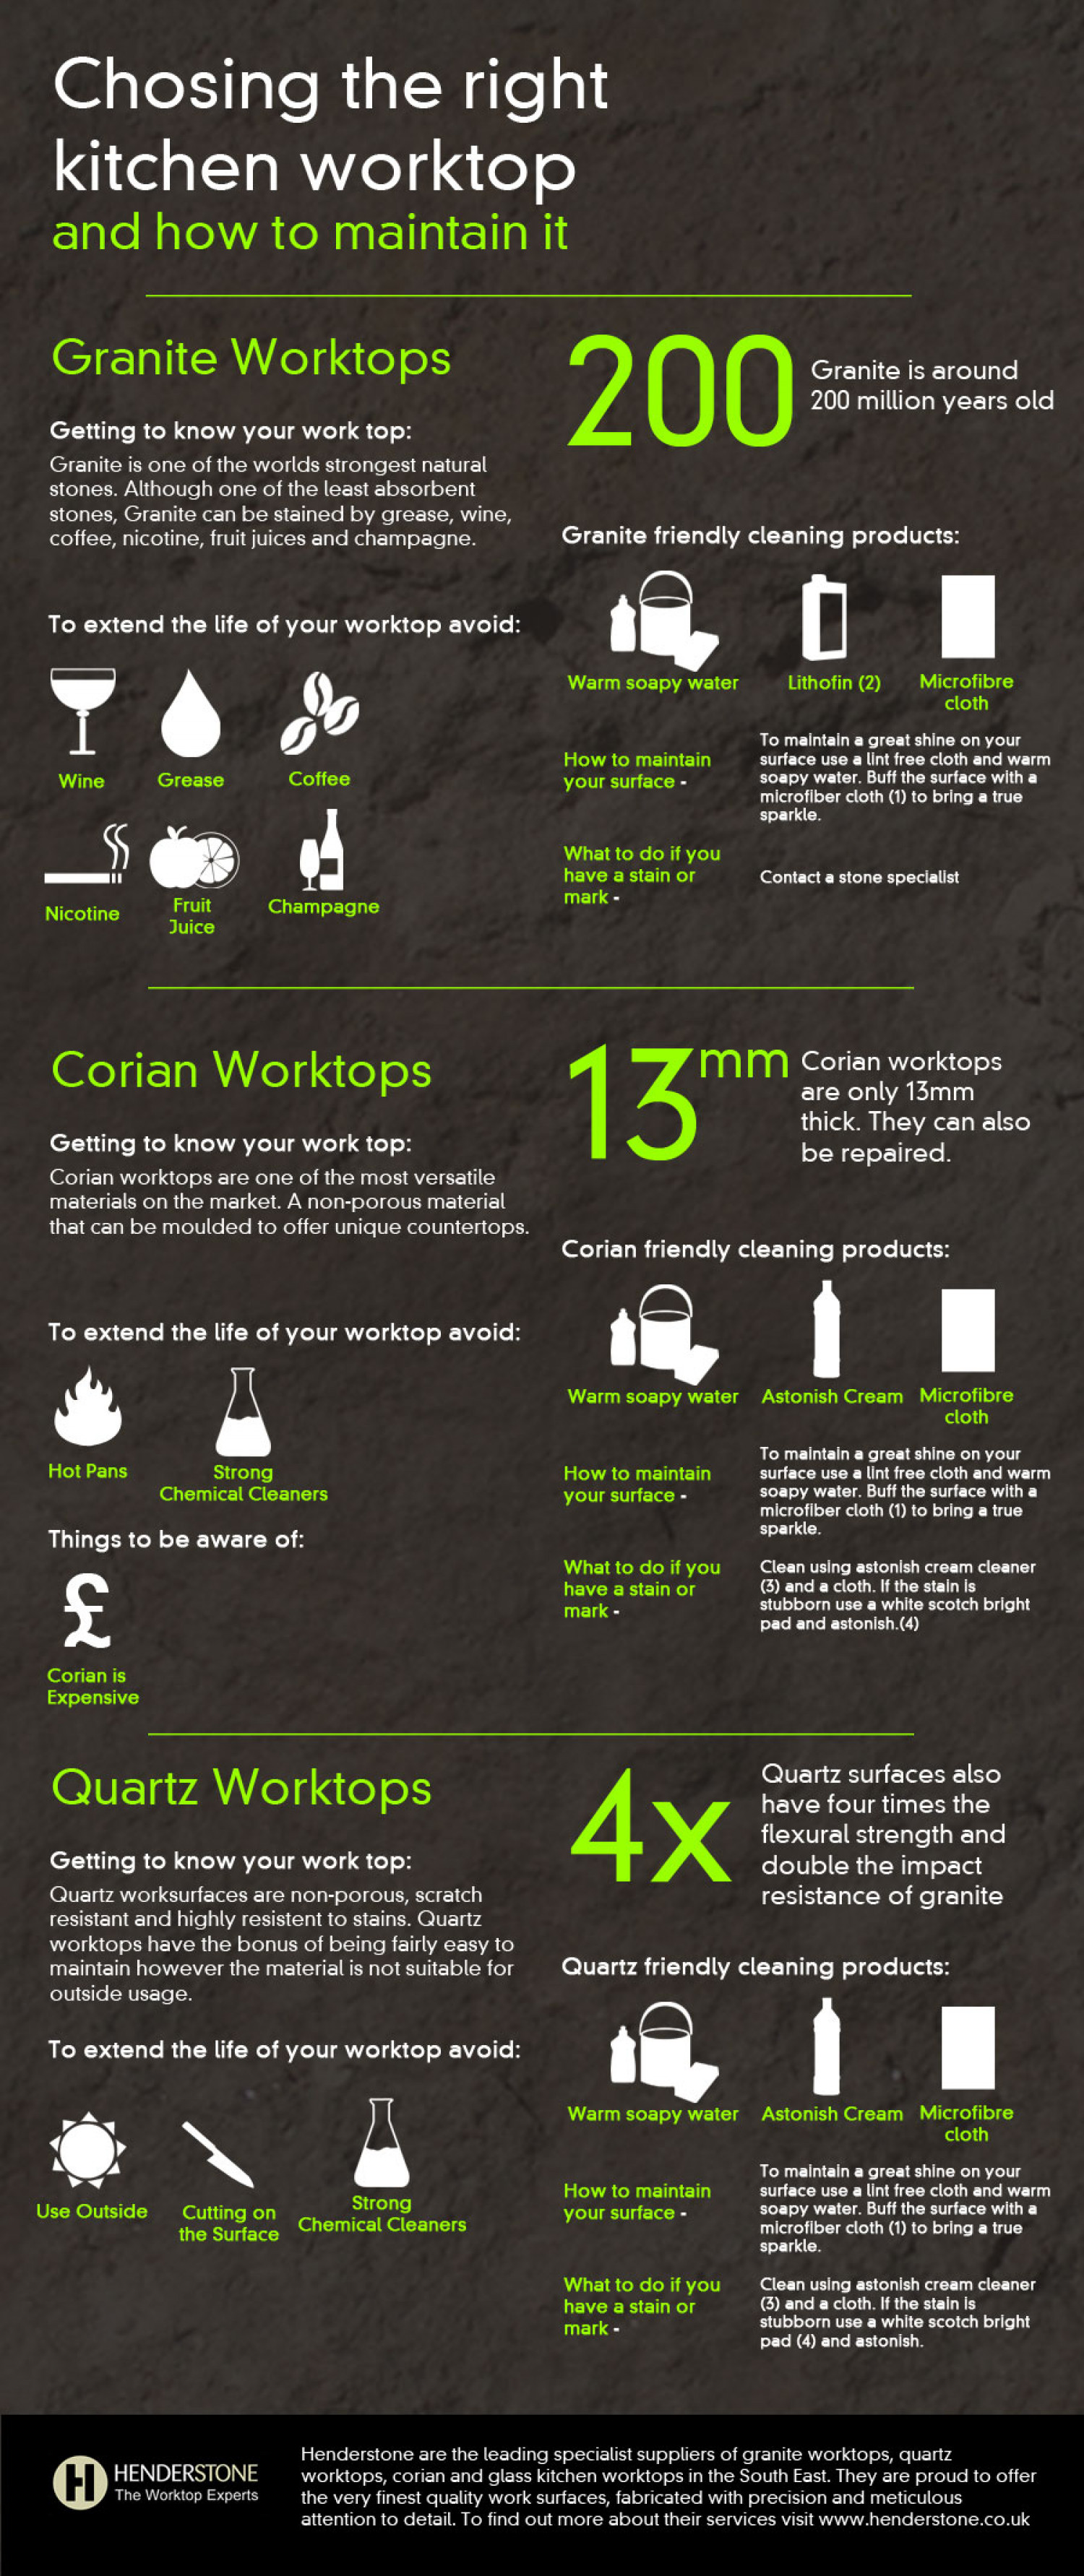 Choosing the right kitchen worktop and how to maintain it Infographic